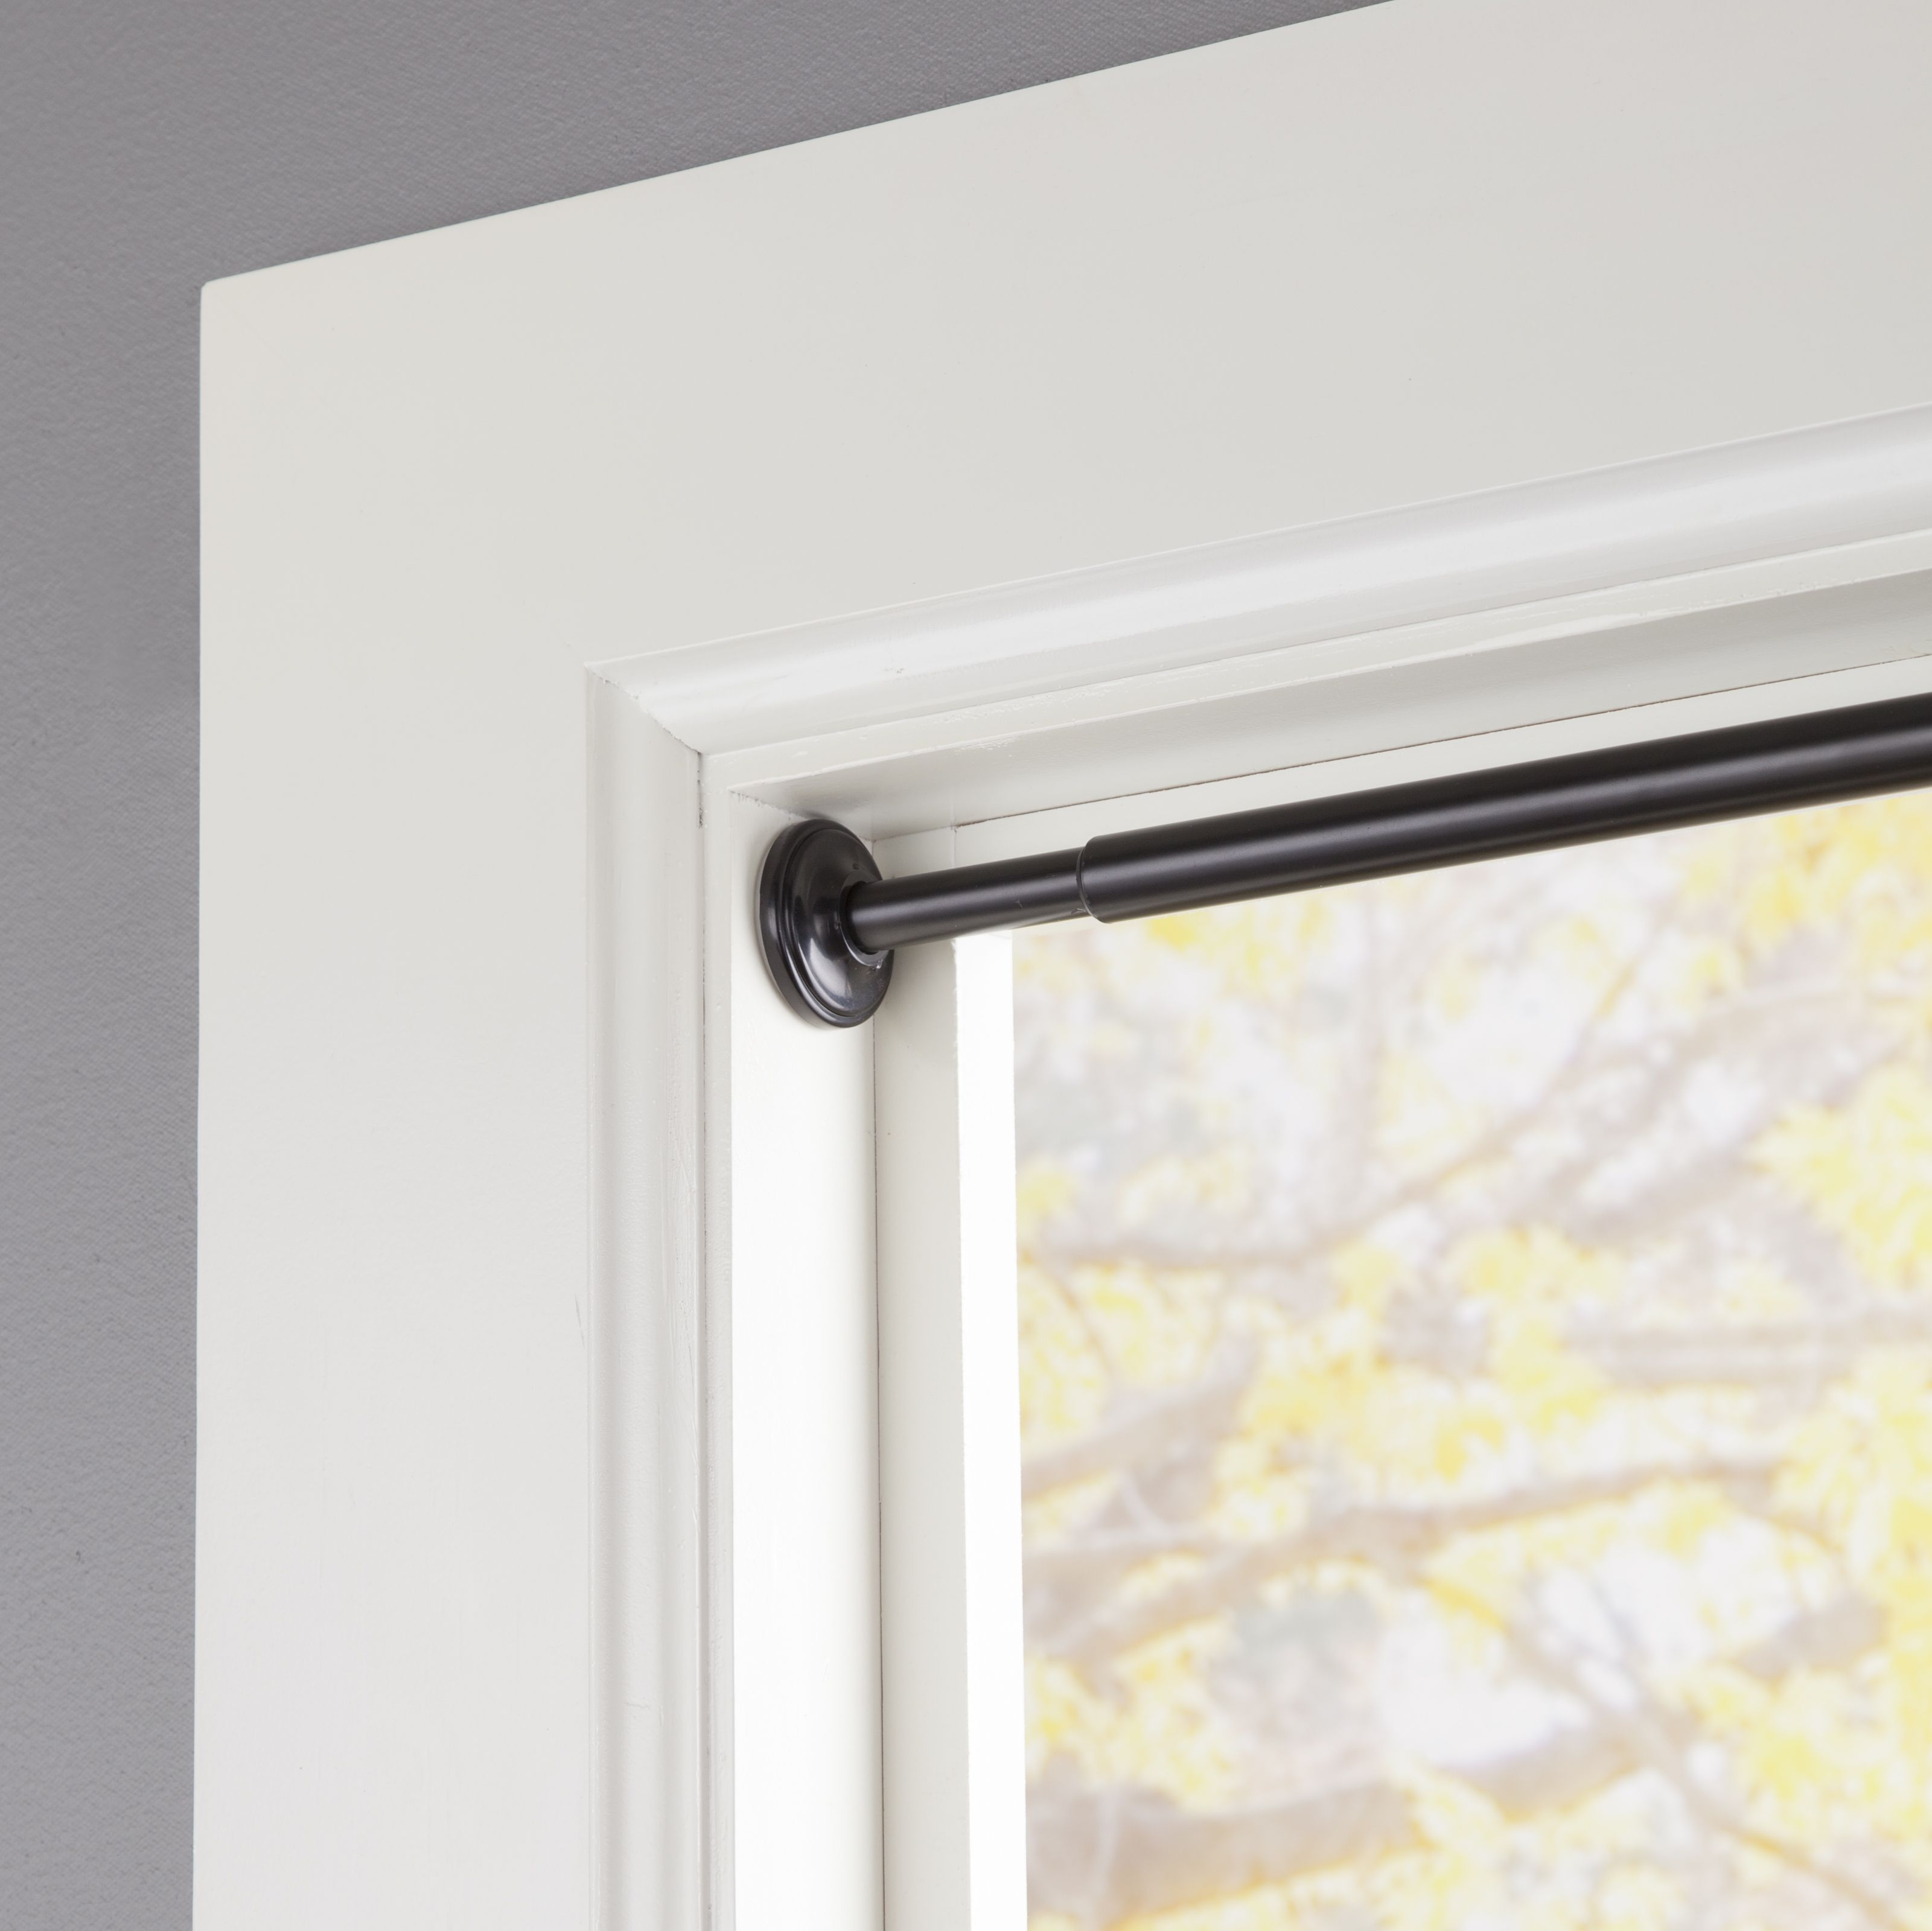 Curtain rod for foot window realtagfo pinterest